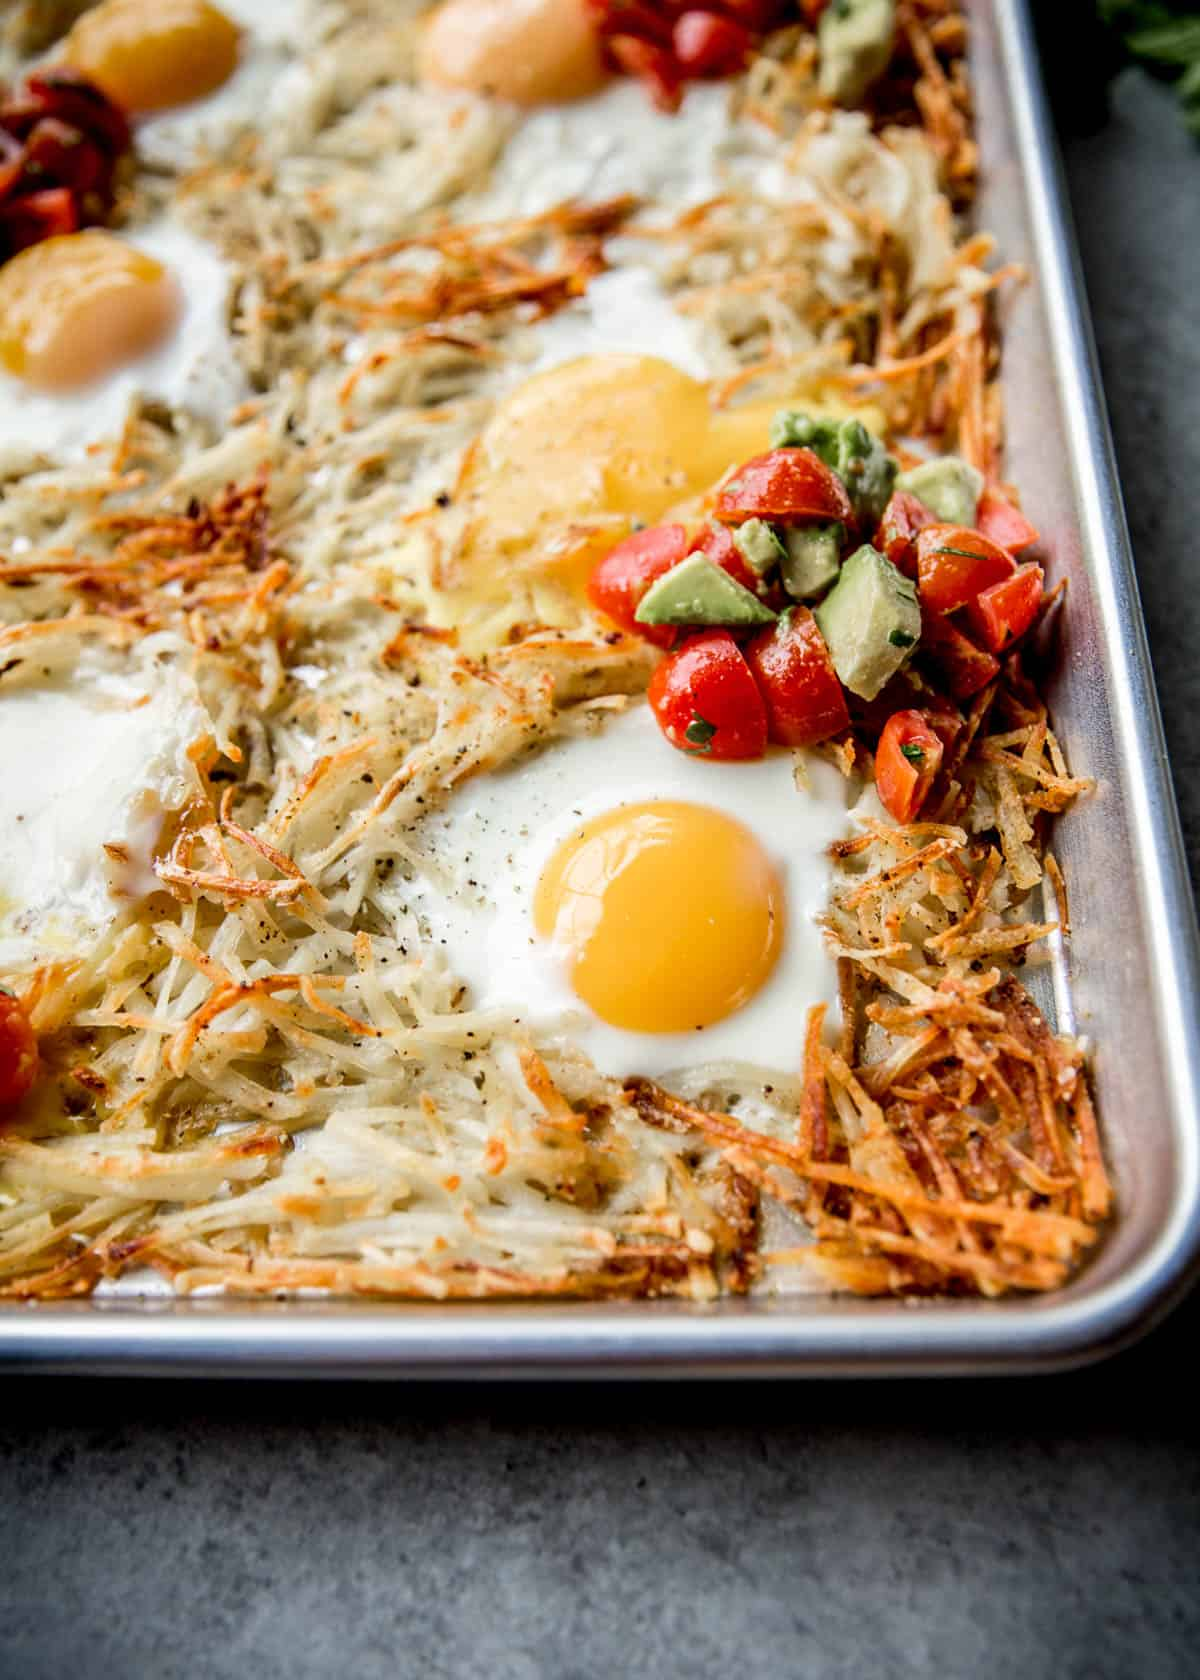 hash browns and a fried egg on a sheet pan